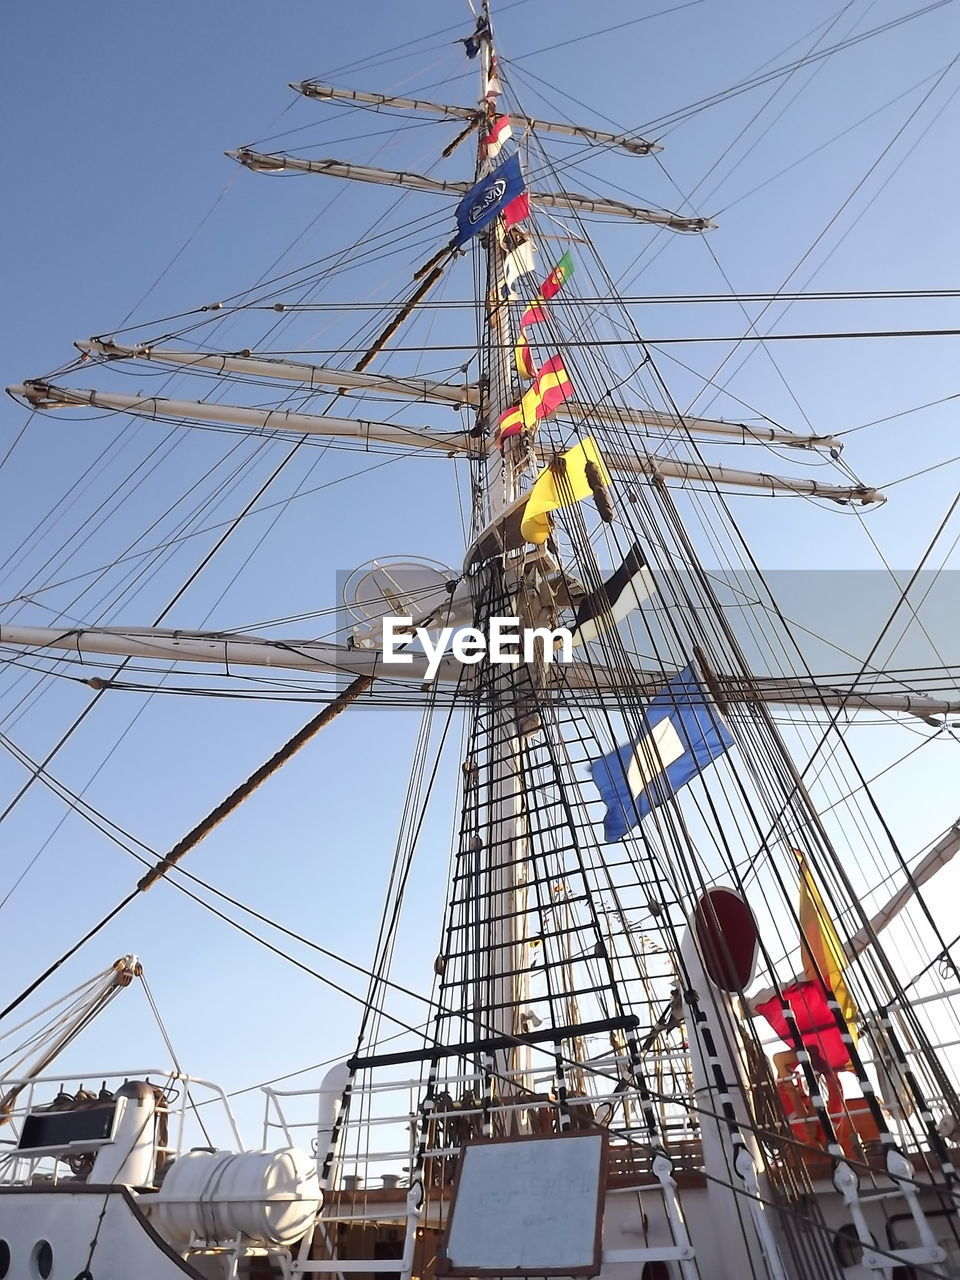 low angle view, real people, day, sky, transportation, nautical vessel, mast, men, outdoors, rigging, helmet, headwear, clear sky, working, occupation, architecture, one person, tall ship, teamwork, hardhat, sailing ship, people